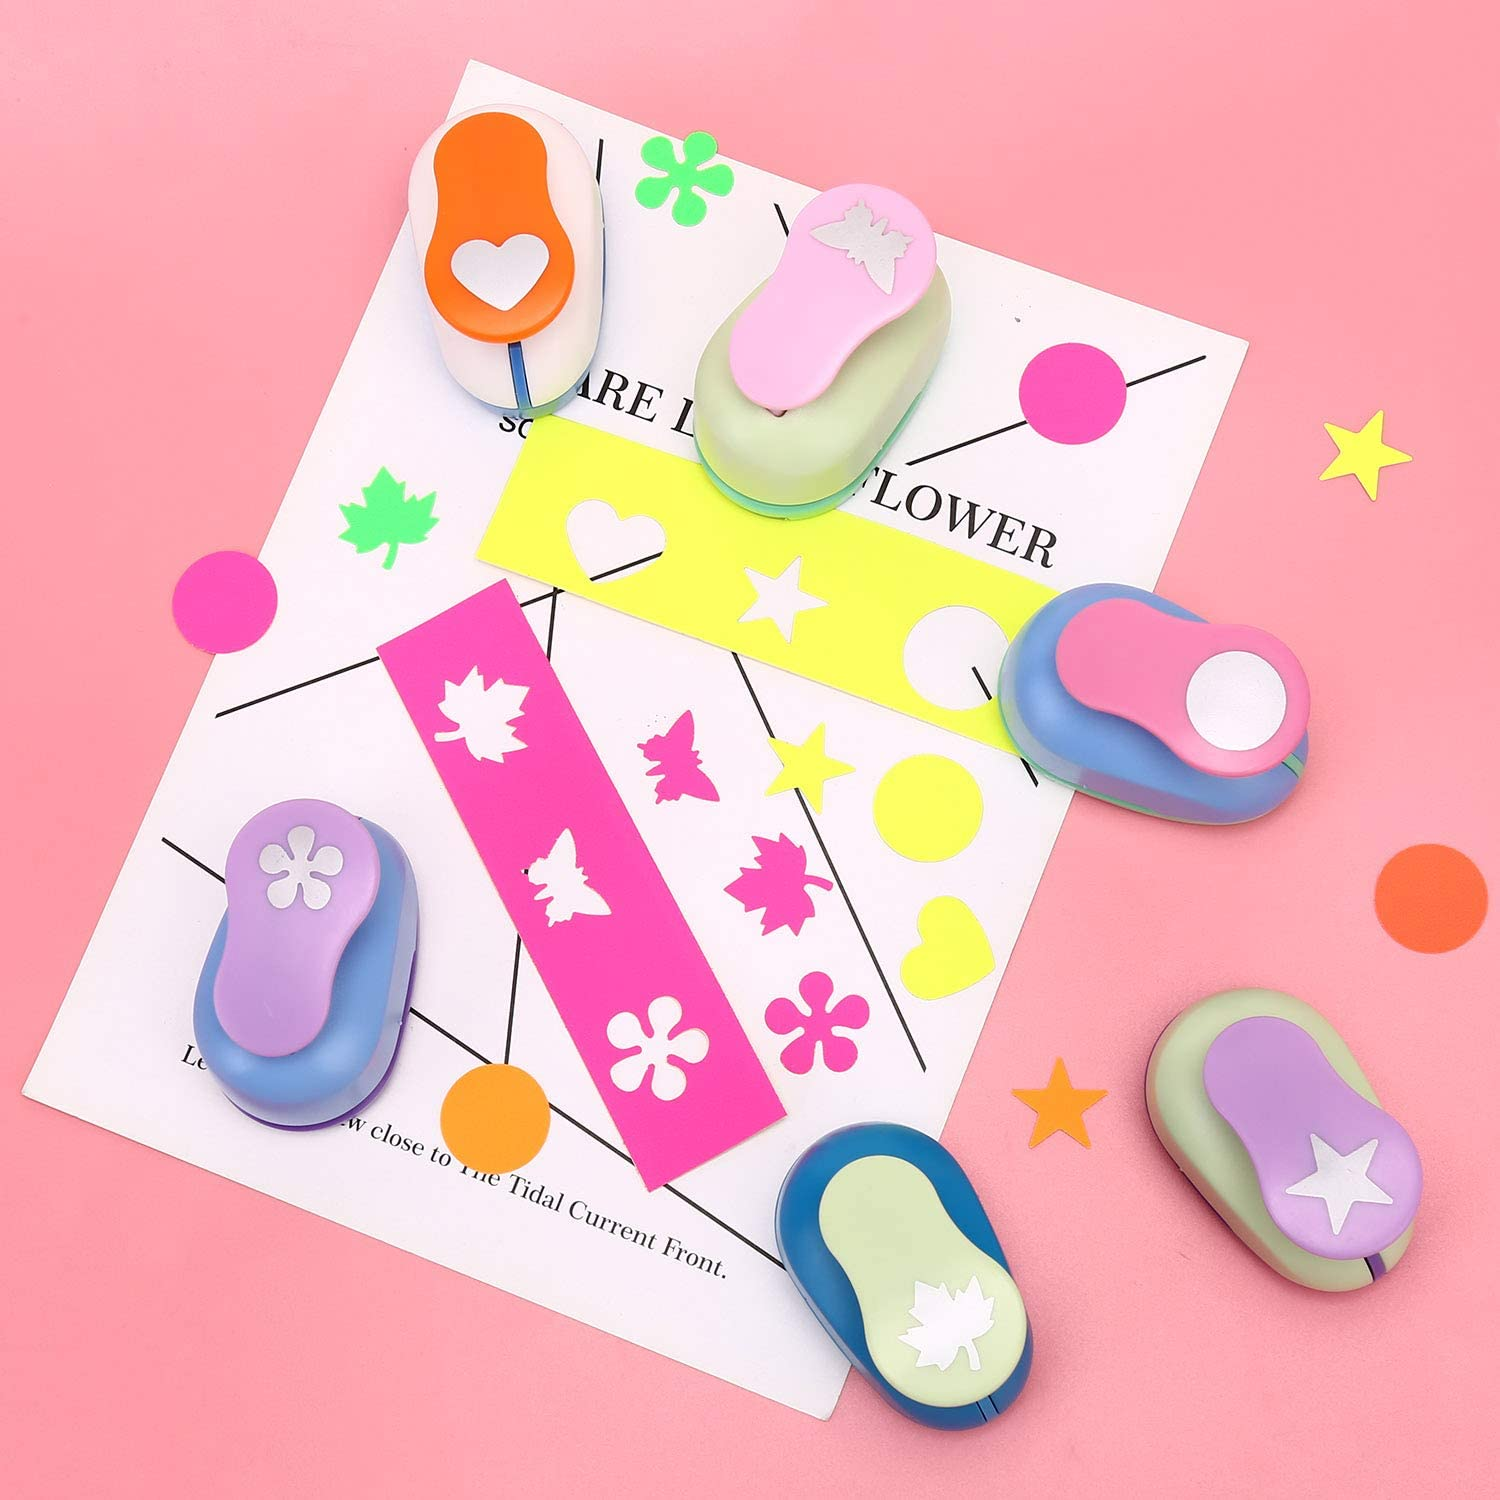 Color May Vary Heart Card Making Buytra Scrapbook Paper Punchers Hole Punch 1 Inch Square Punch 4 Shapes Including Circle Scrapbooking Star Shape Punches for Kids Paper Crafts